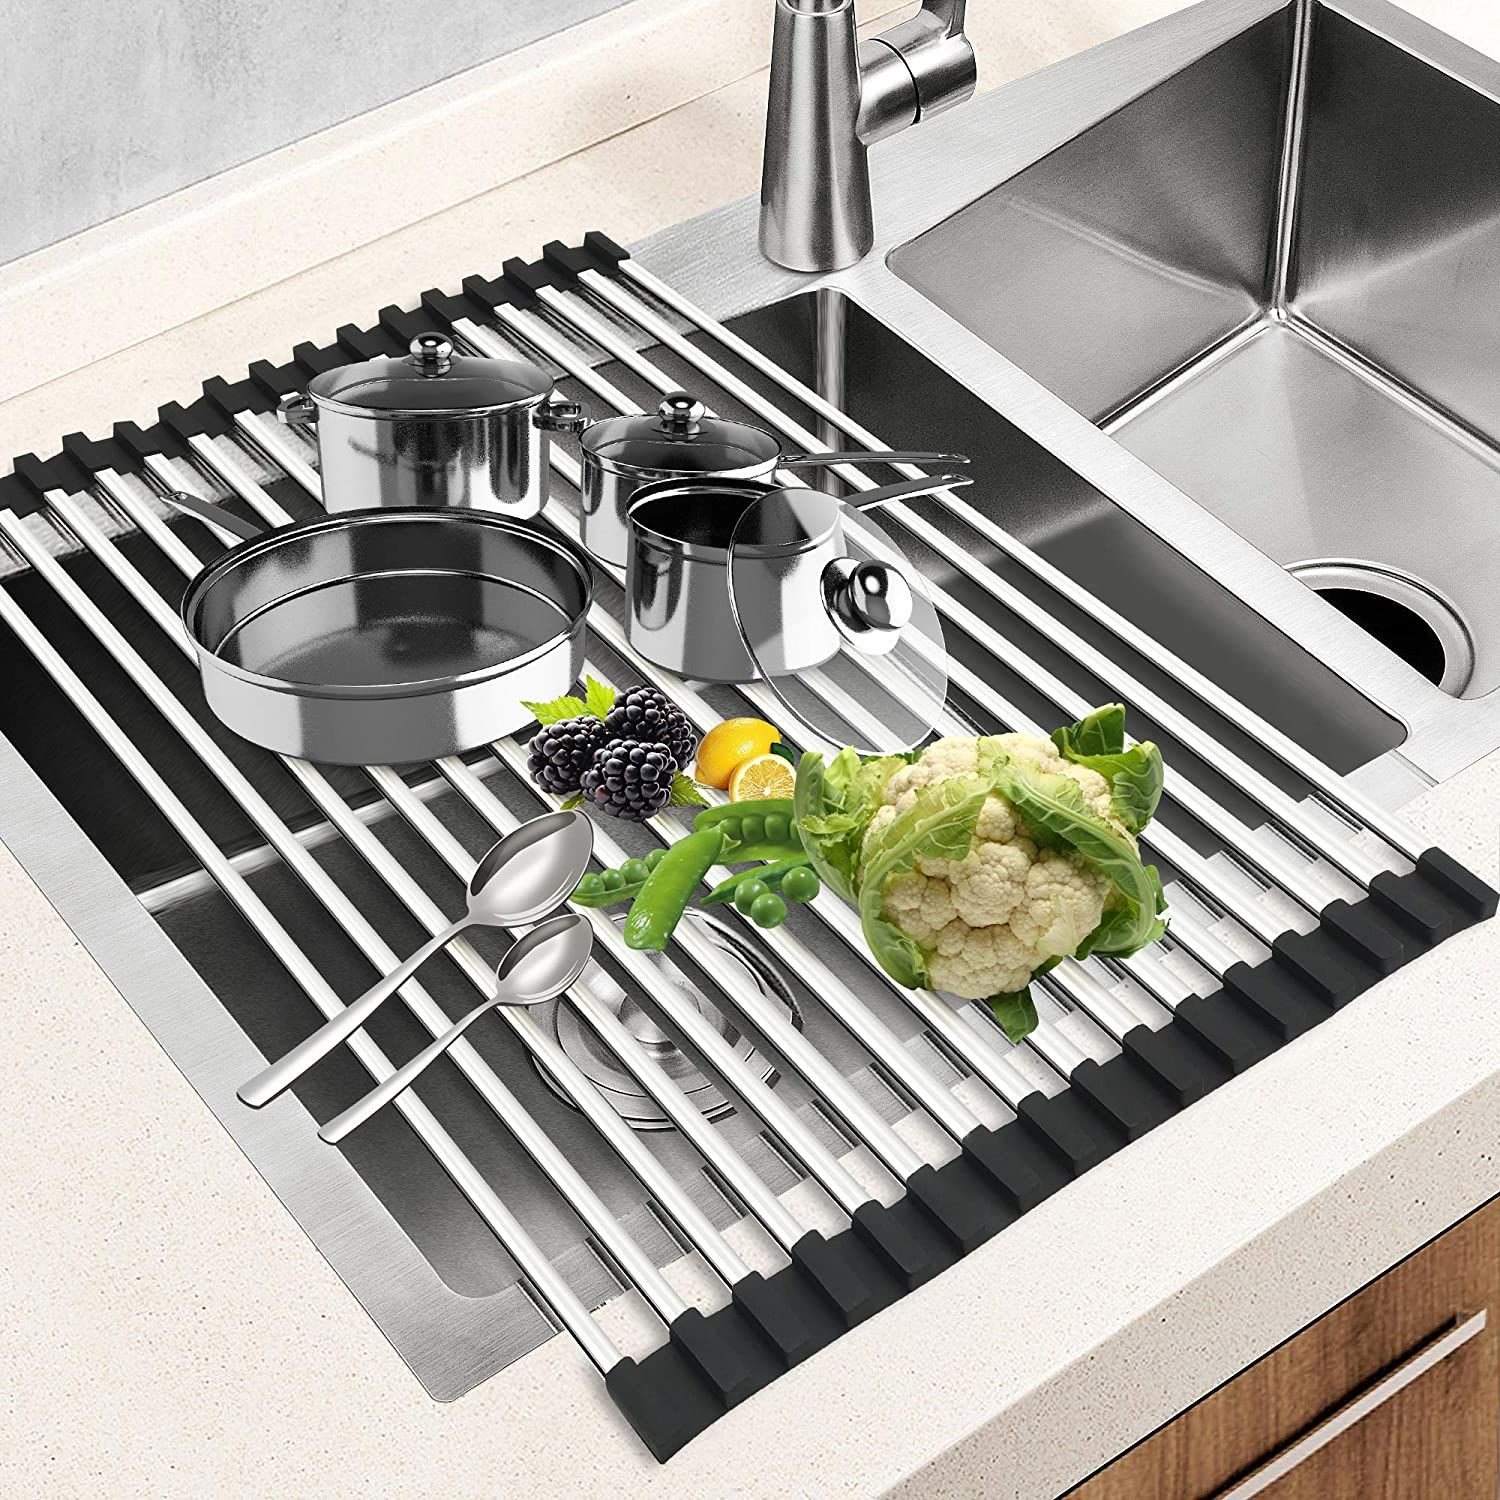 Price:$18. √[Multiple uses ]: Heat resistant up to 446°F (230°C), BPA-Free, so you can use this foldable rack as dish drying rack and trivet cooling rack. Great for air-drying dishes, draining, vegetable colander, protecting counters from hot pots and pans. This dish dryer can also be used as prep works platform over the Sink. #Kitchen #home #kitcheninspirations #kitchenideas #ideakitchen #outsidekitchen #homedecorkitchen